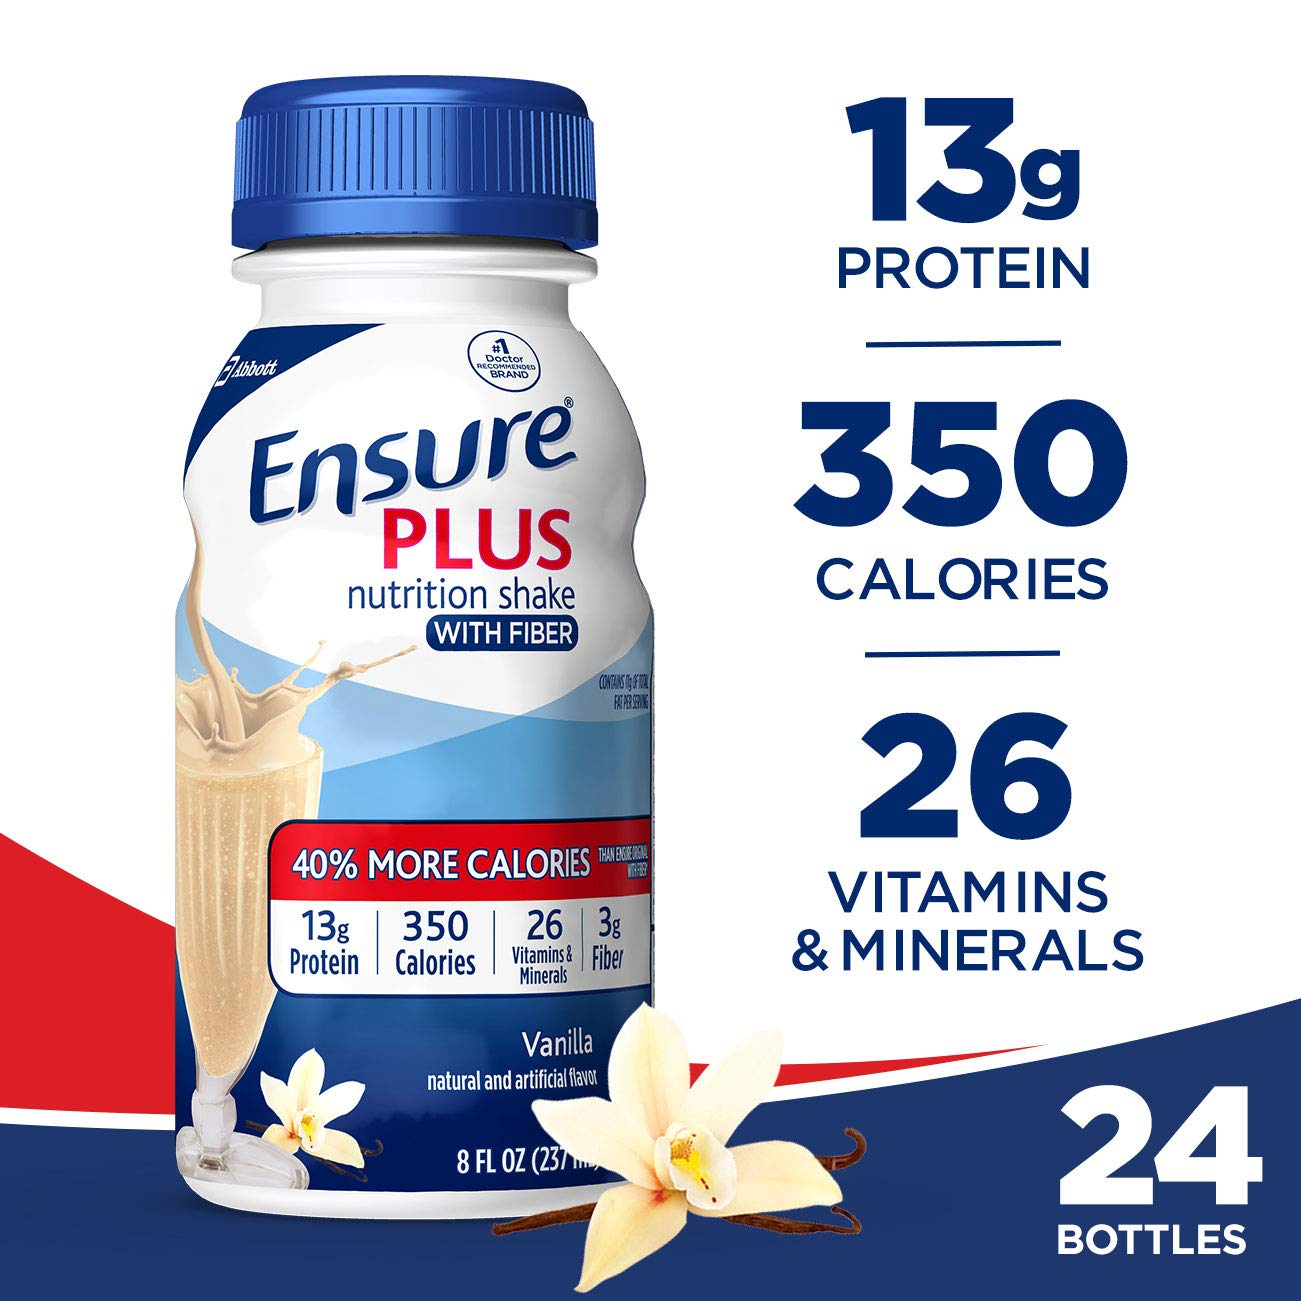 Ensure Plus Nutrition Shake with Fiber, 13g High-Quality Protein, Meal Replacement Shakes, Vanilla, 8 fl oz, 24 count by Ensure Plus